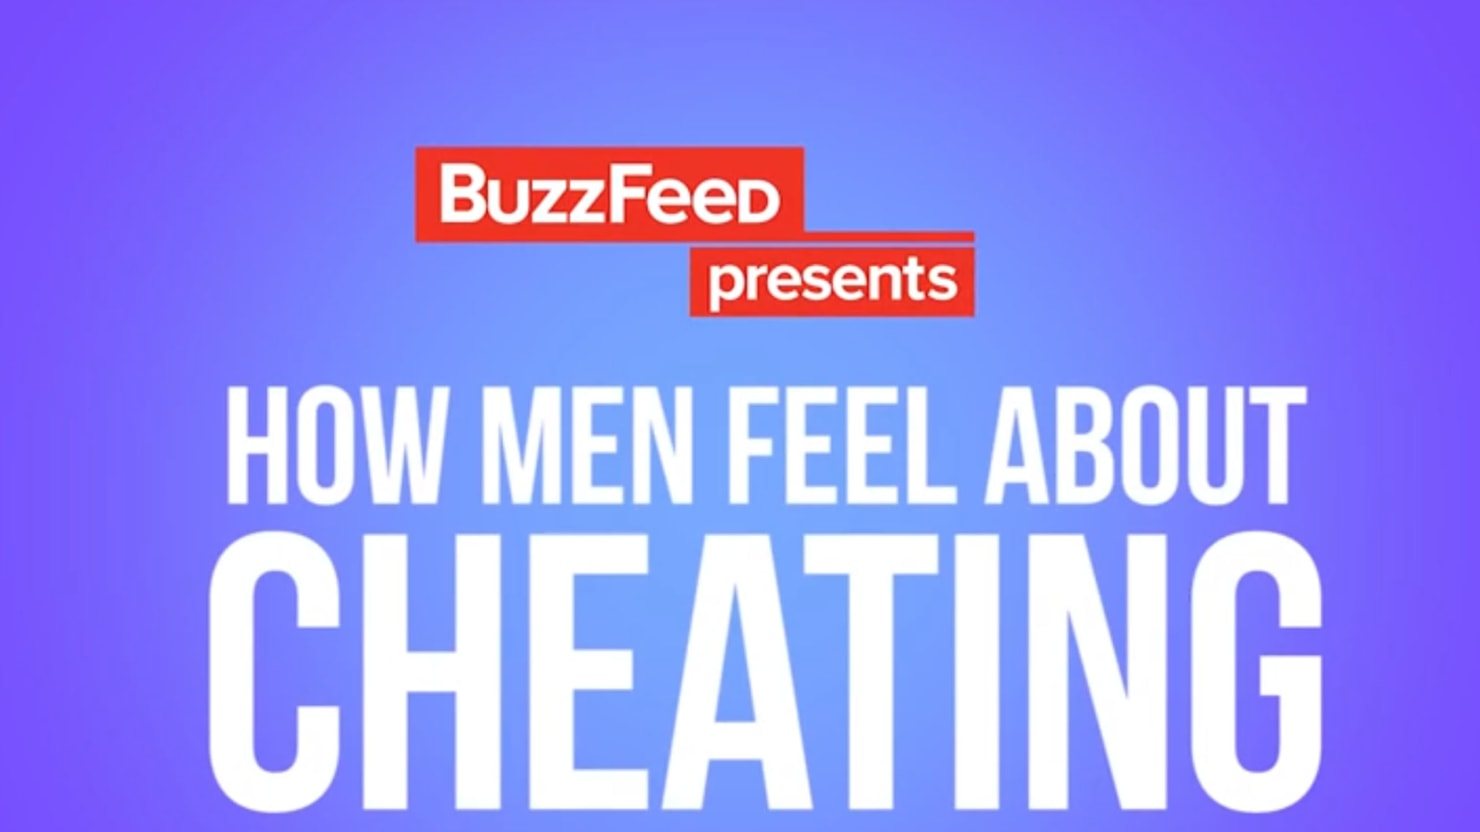 How Do Men Feel About Cheating?